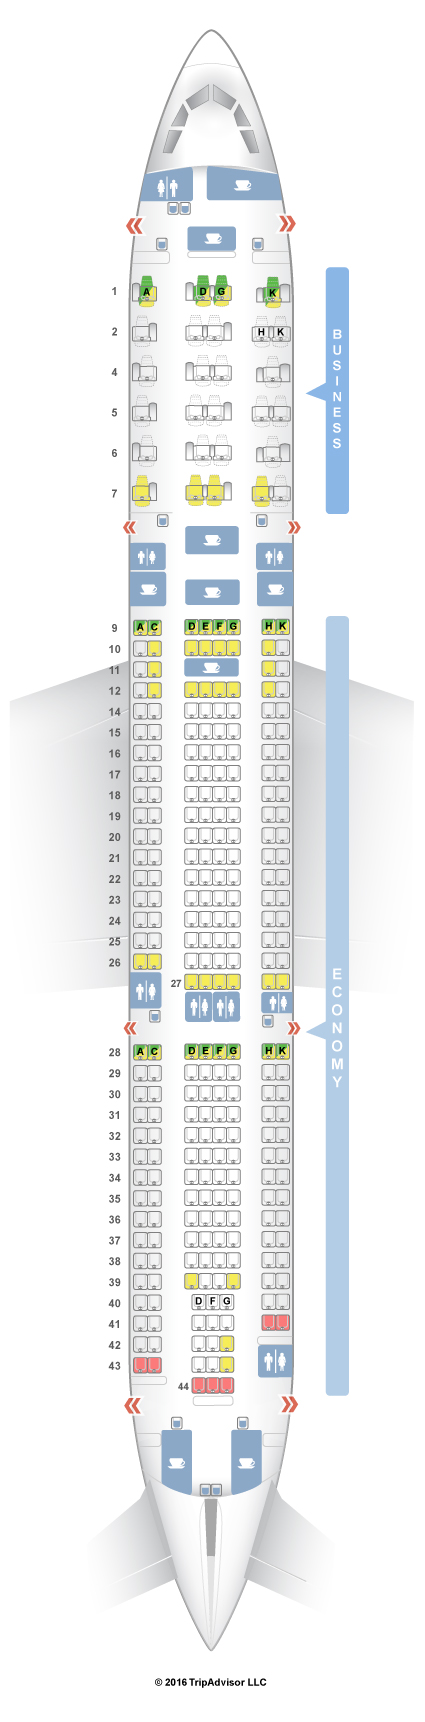 SeatGuru Seat Map Malaysia Airlines Airbus A330-300 (333) V1 - photo#28